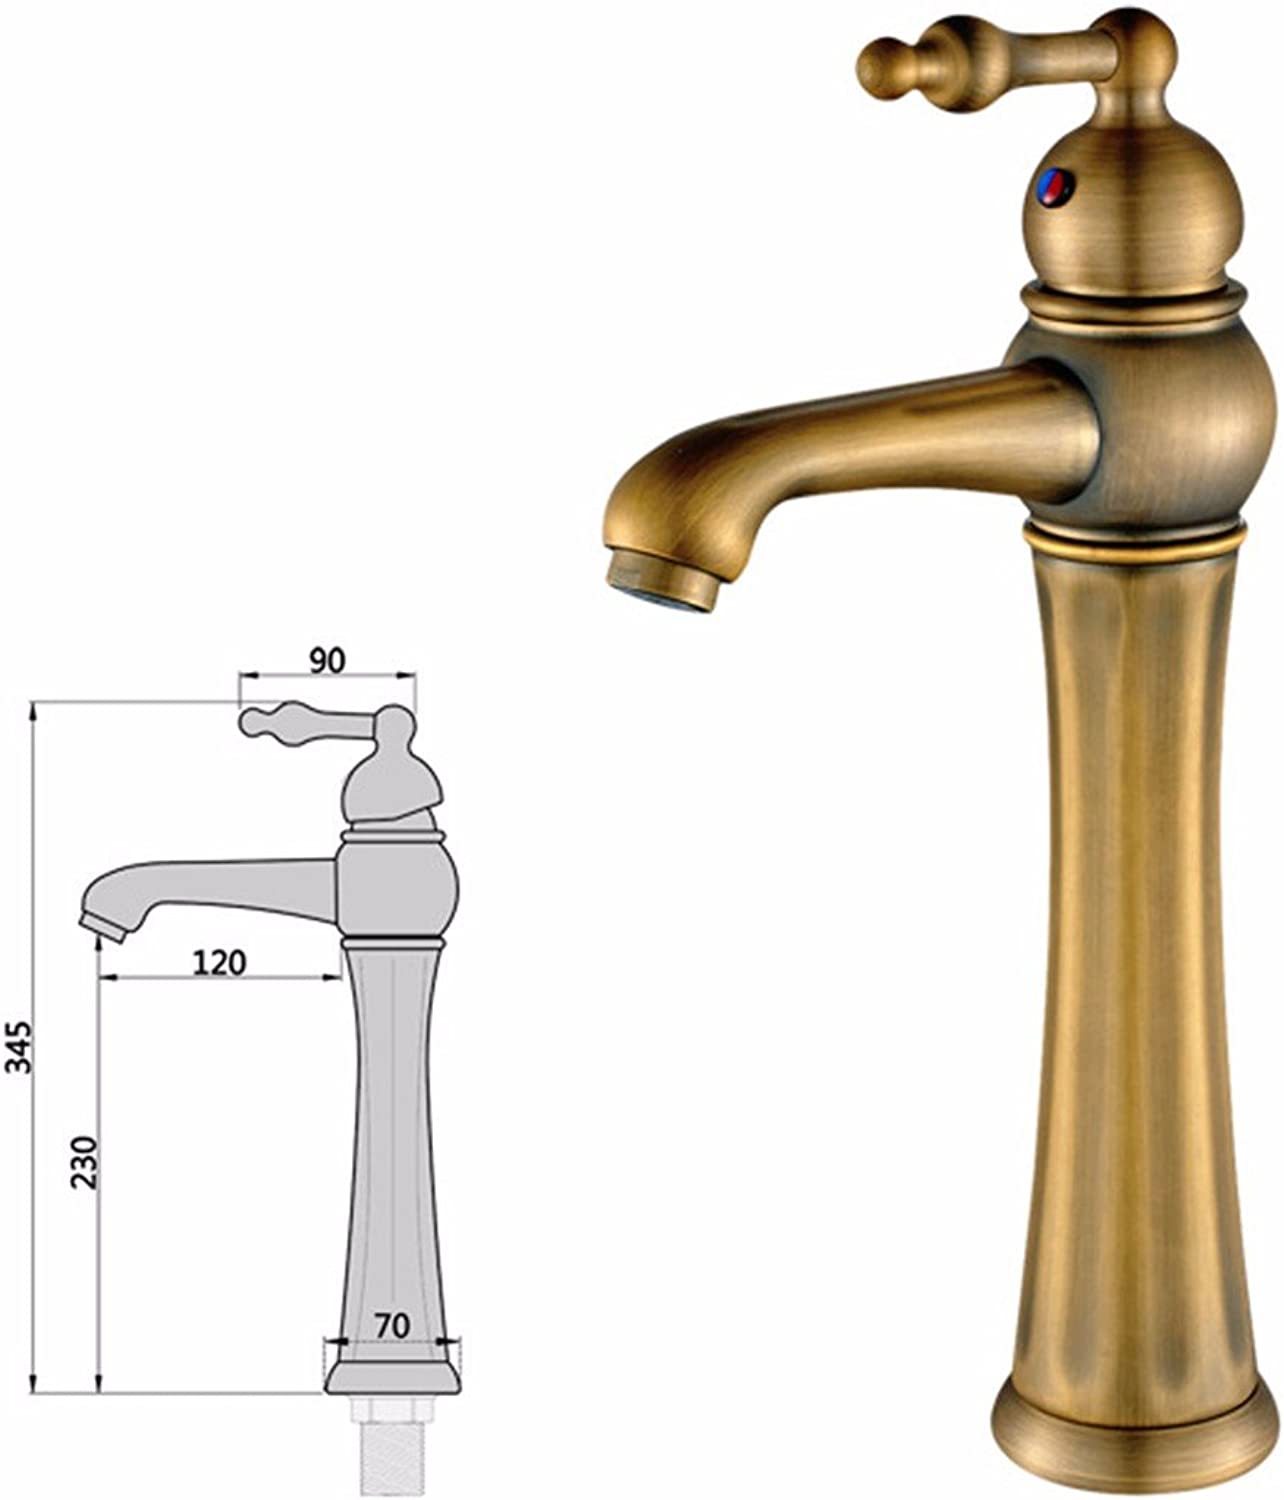 LHbox Basin Mixer Tap Bathroom Sink Faucet Continental antique faucet, copper-colord wash hand basins, surface basin, home basin faucet, hot and cold water wash-basin mixer